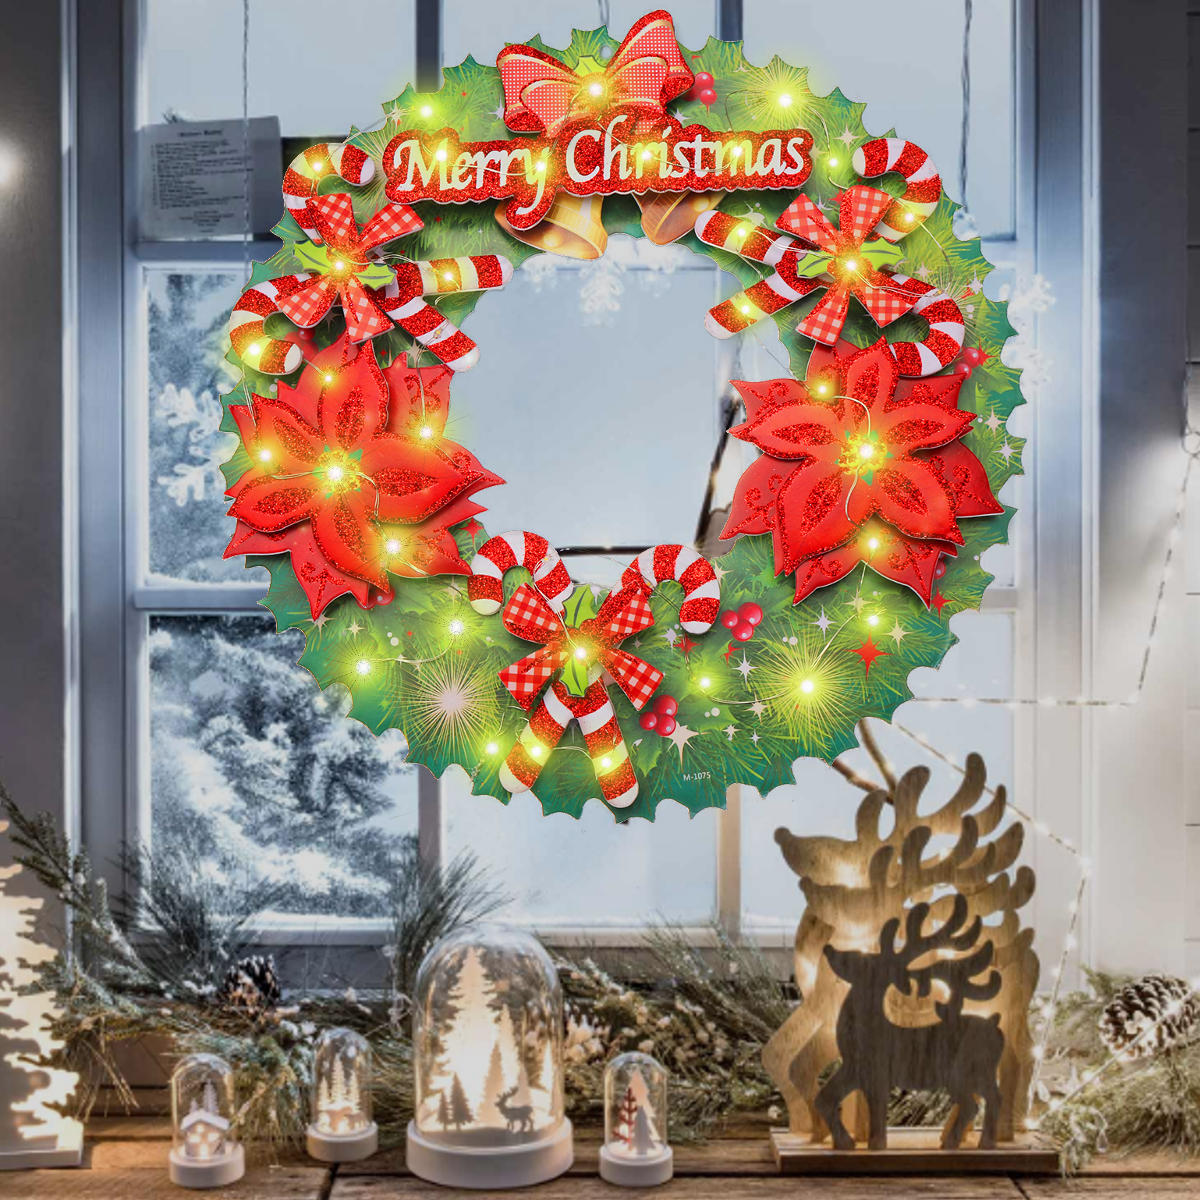 Battery Led Light Up Wreath Hanging Ornaments Christmas Home Party Decor Holiday String Cod